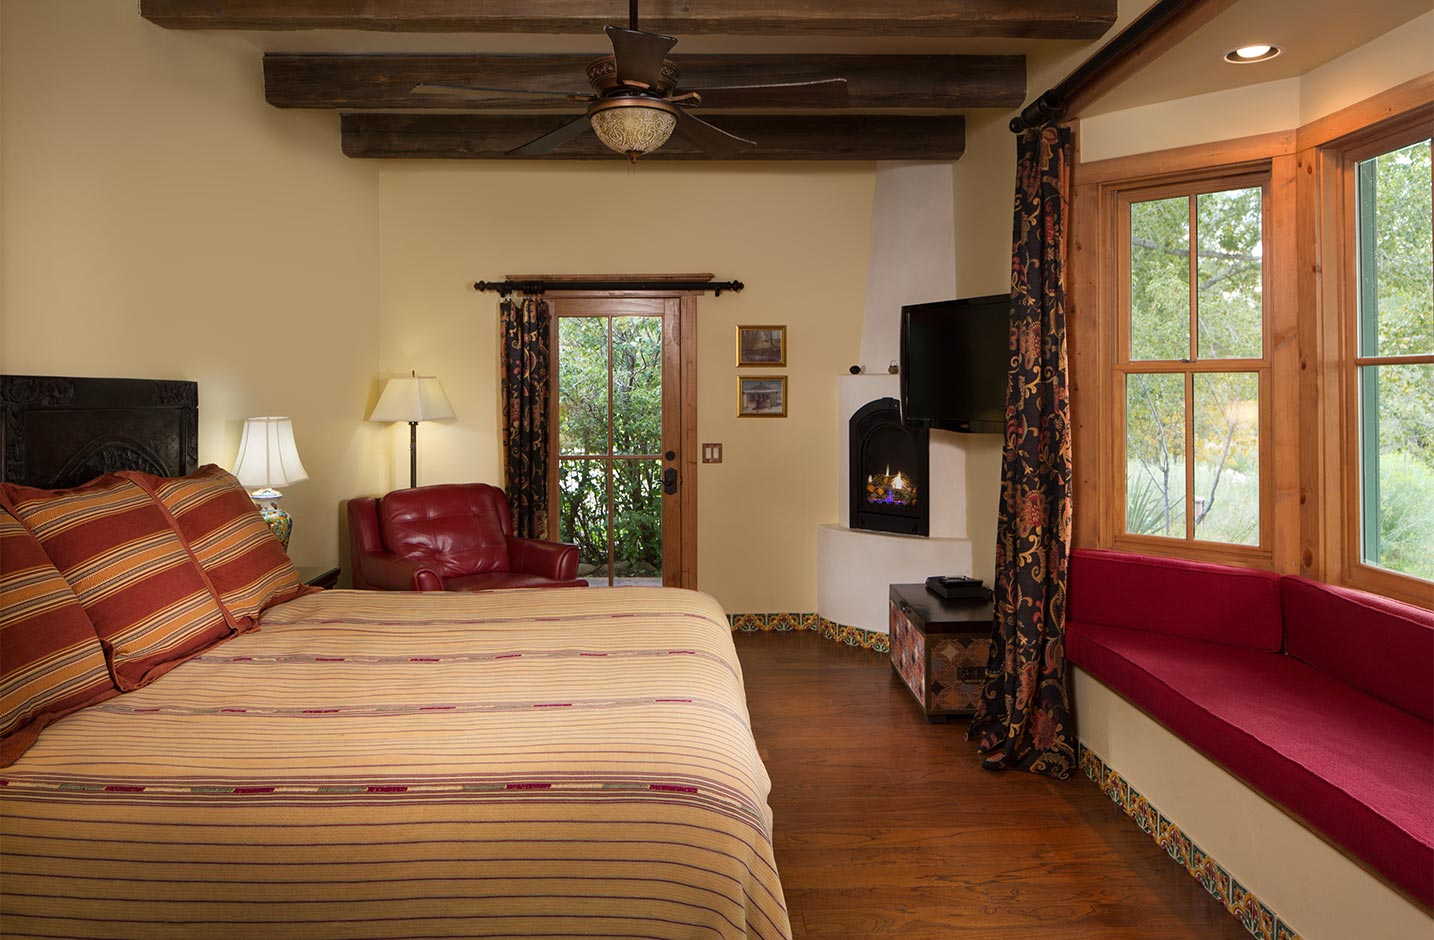 Room with a king size bed, ceiling fan, gas fireplace, a recessed seating area, and door to the outside